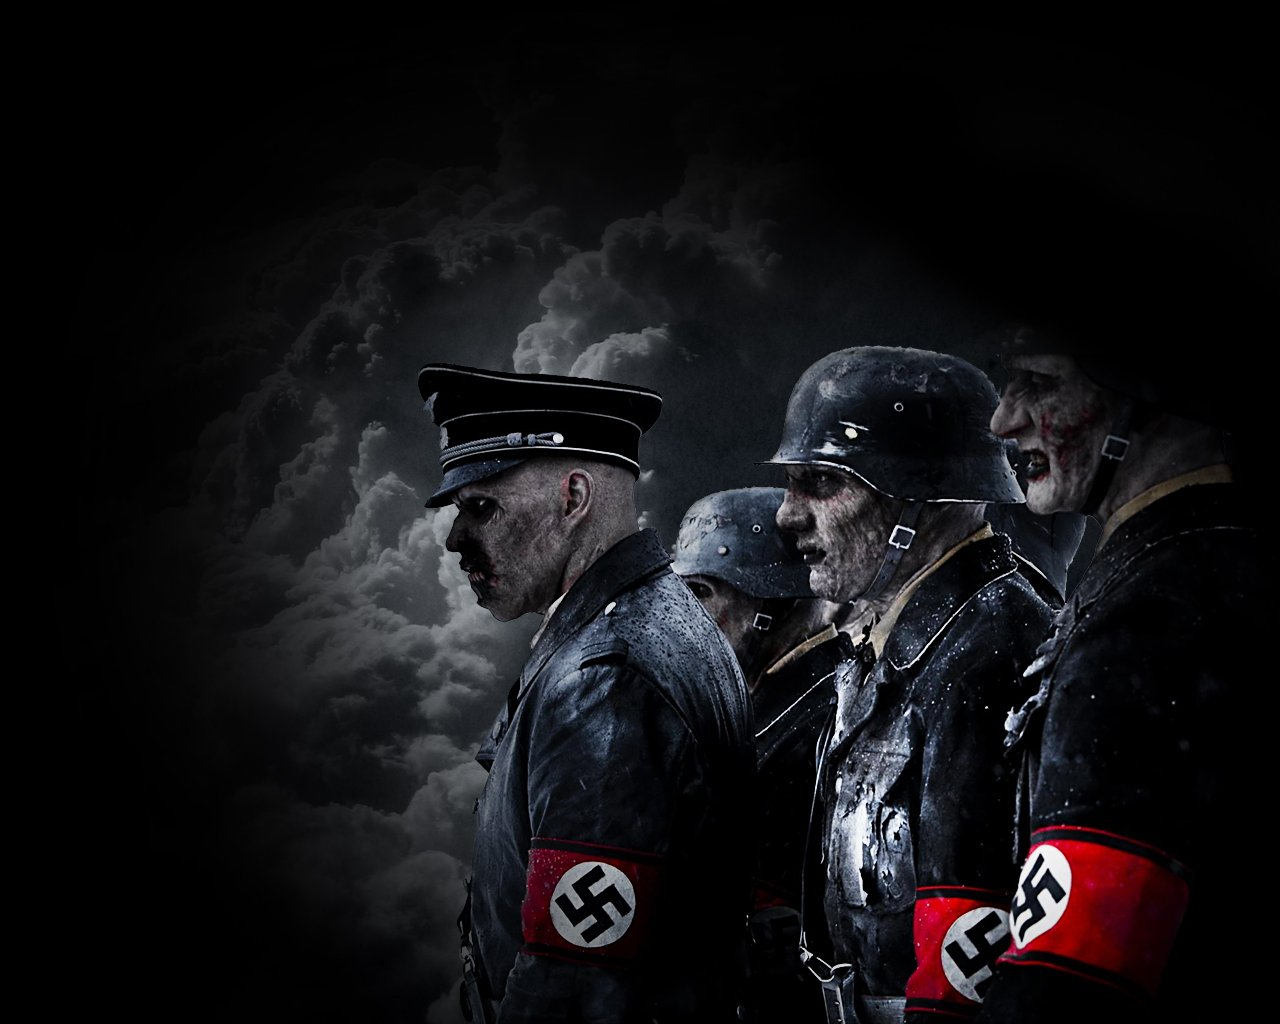 18 nazi hd wallpapers - photo #39